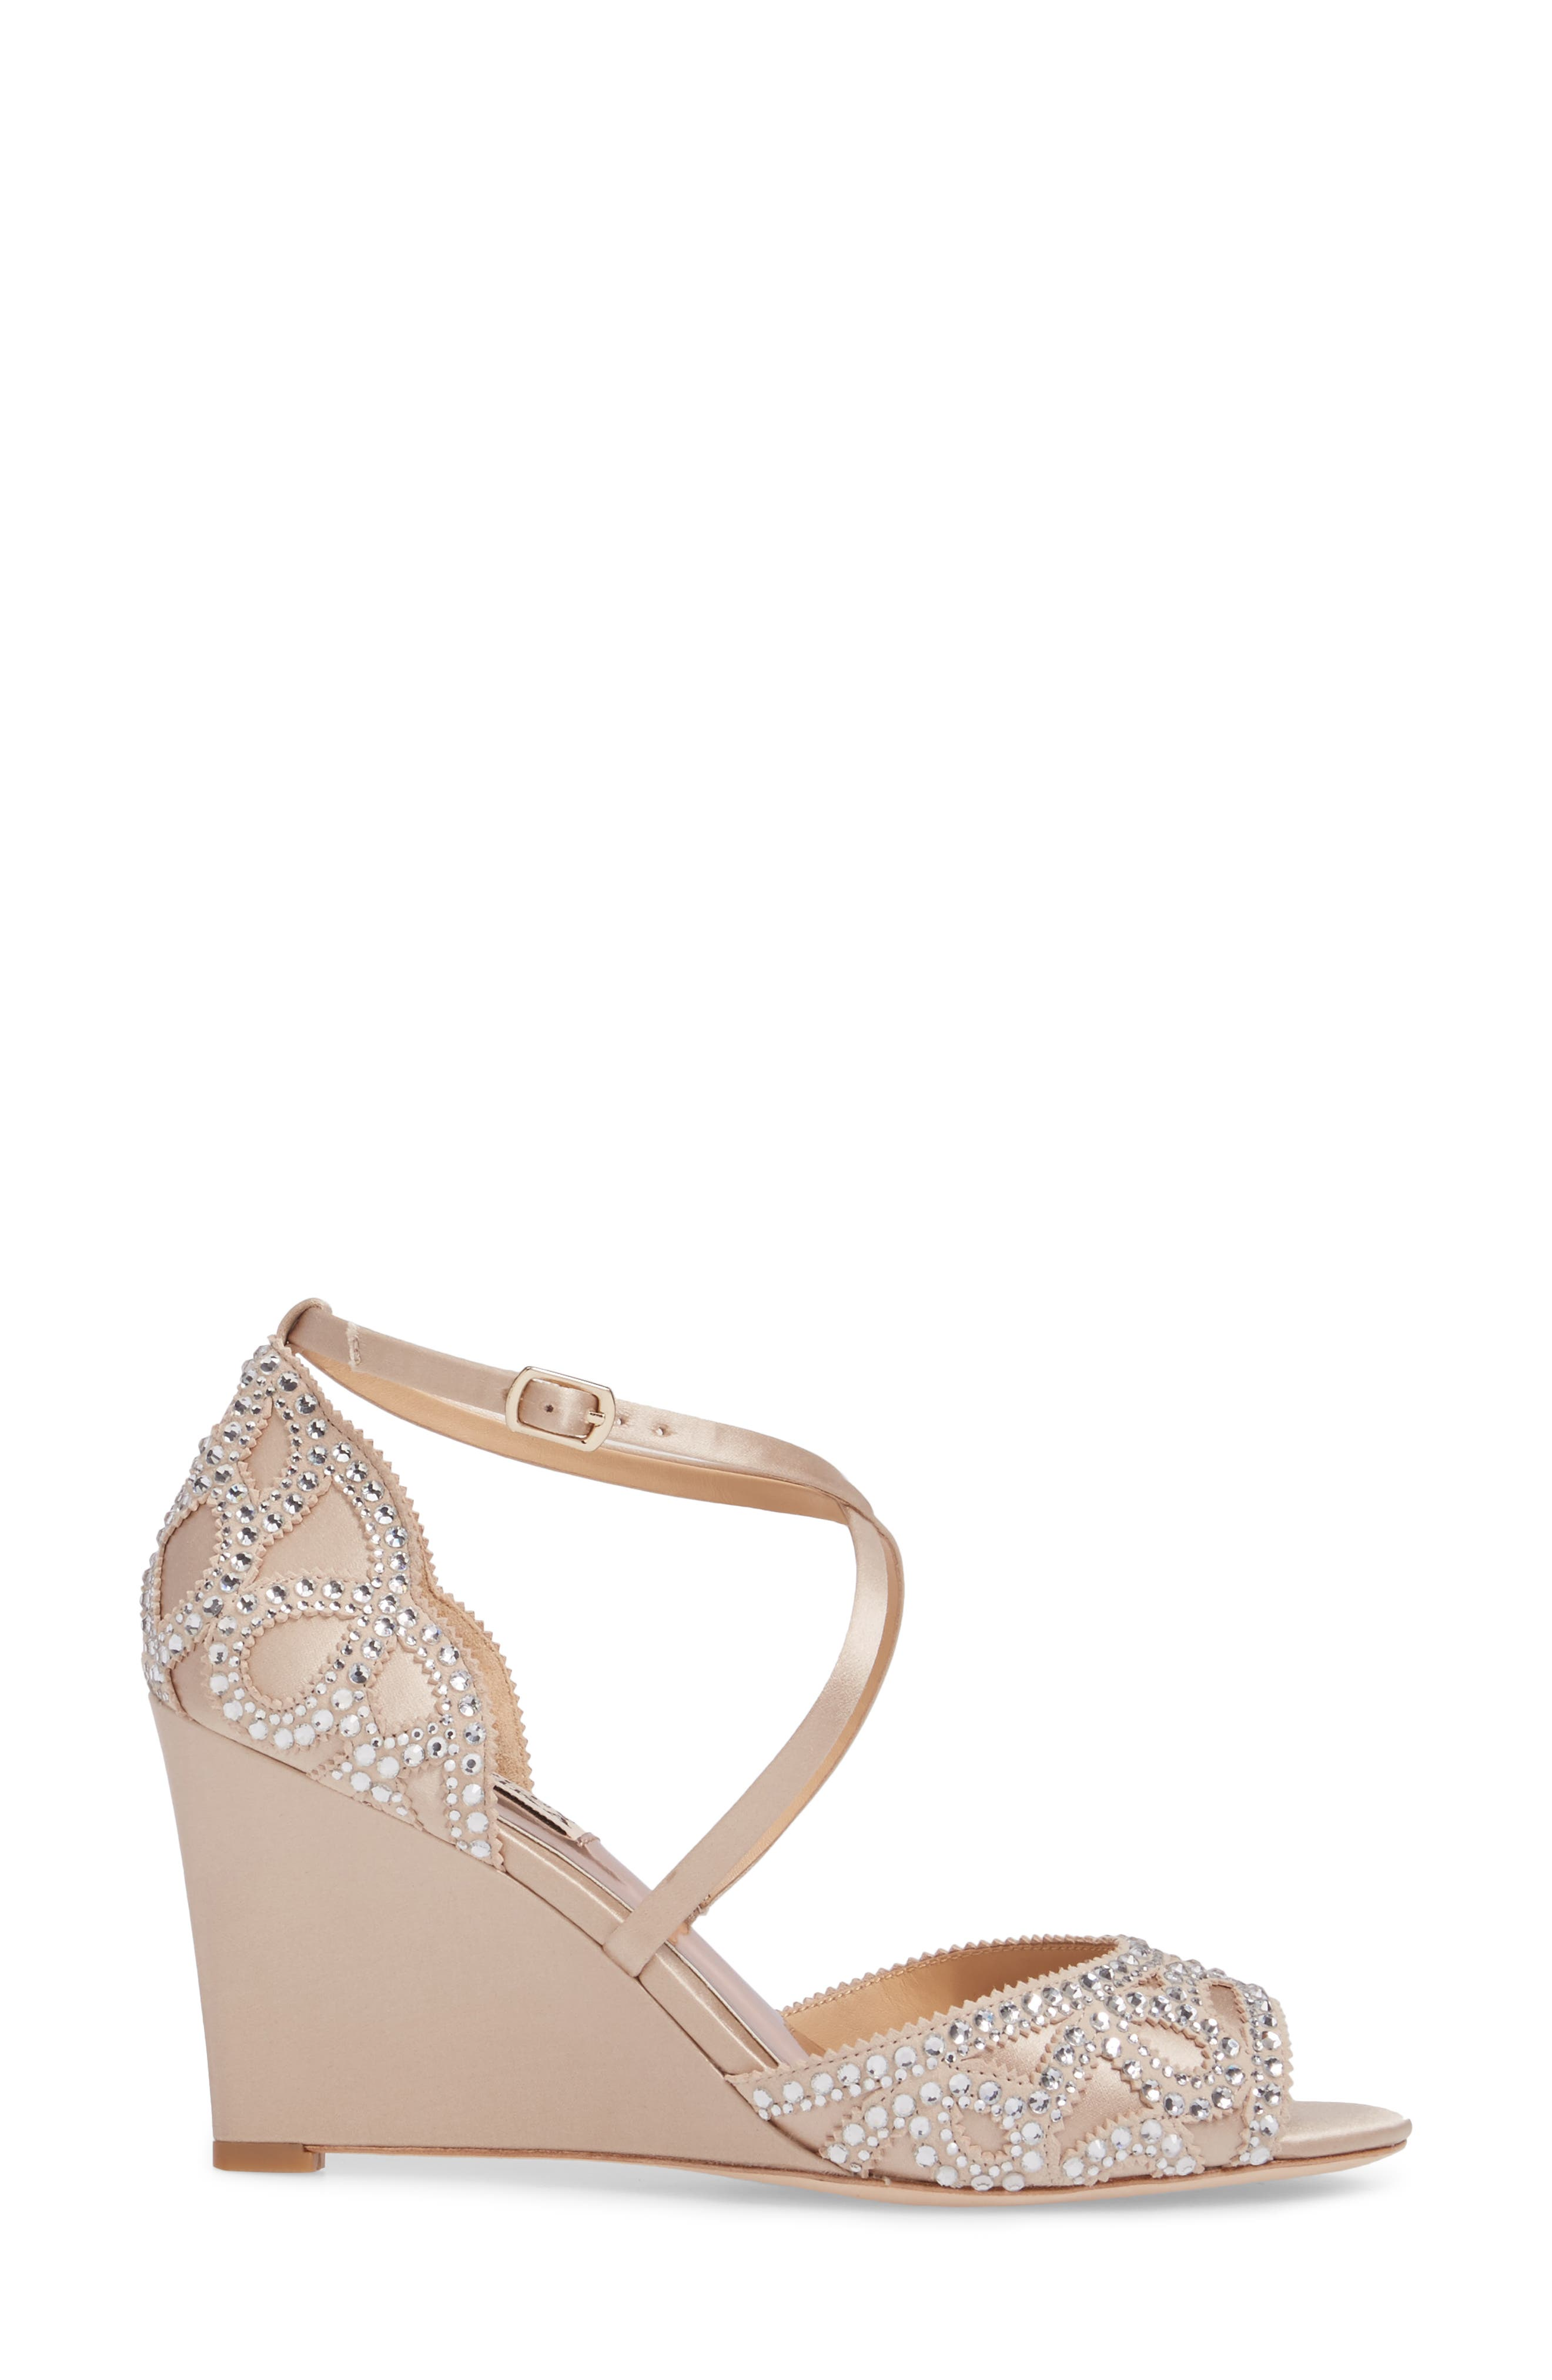 Winter Strappy Wedge Pump,                             Alternate thumbnail 3, color,                             Nude Satin